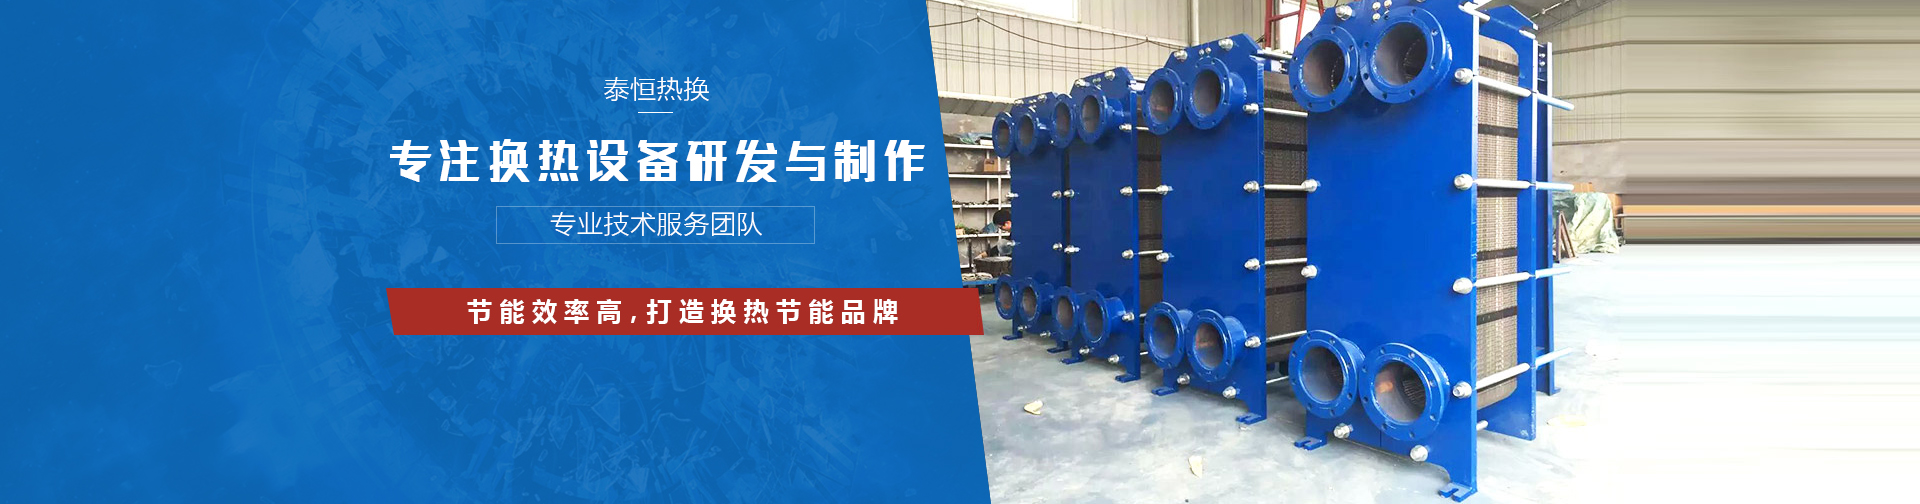 Heat Exchange Equipment Factory-Taiheng